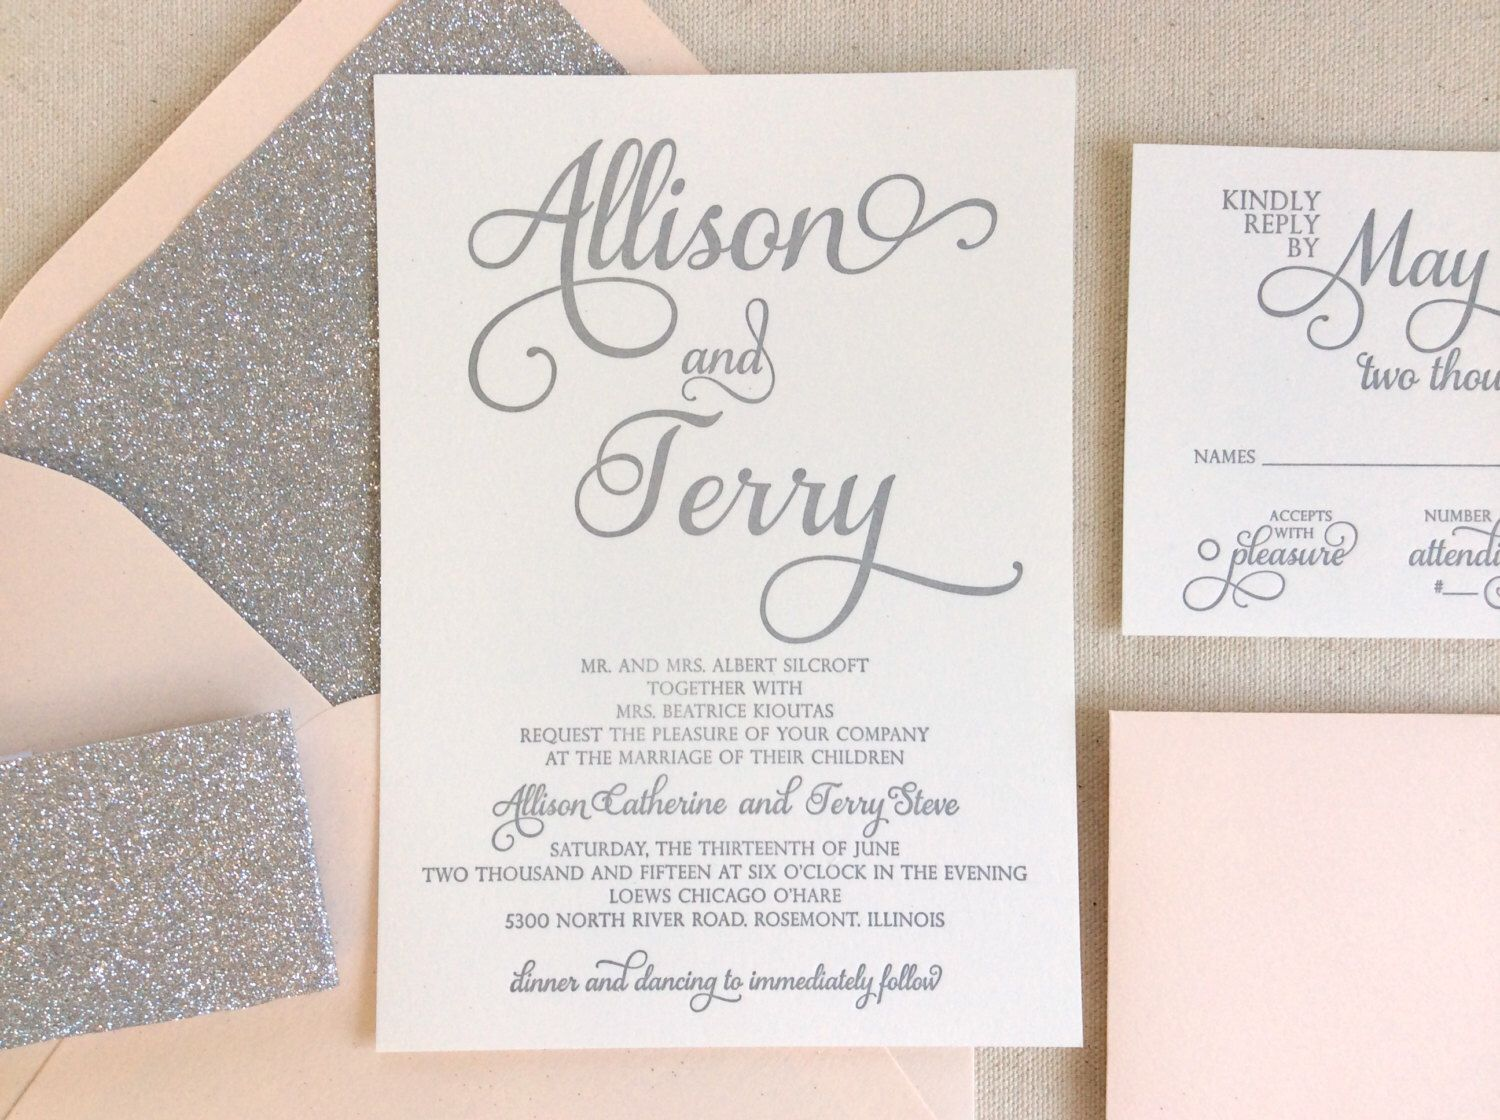 The Stargazer Suite Modern Letterpress Wedding Invitation Sample